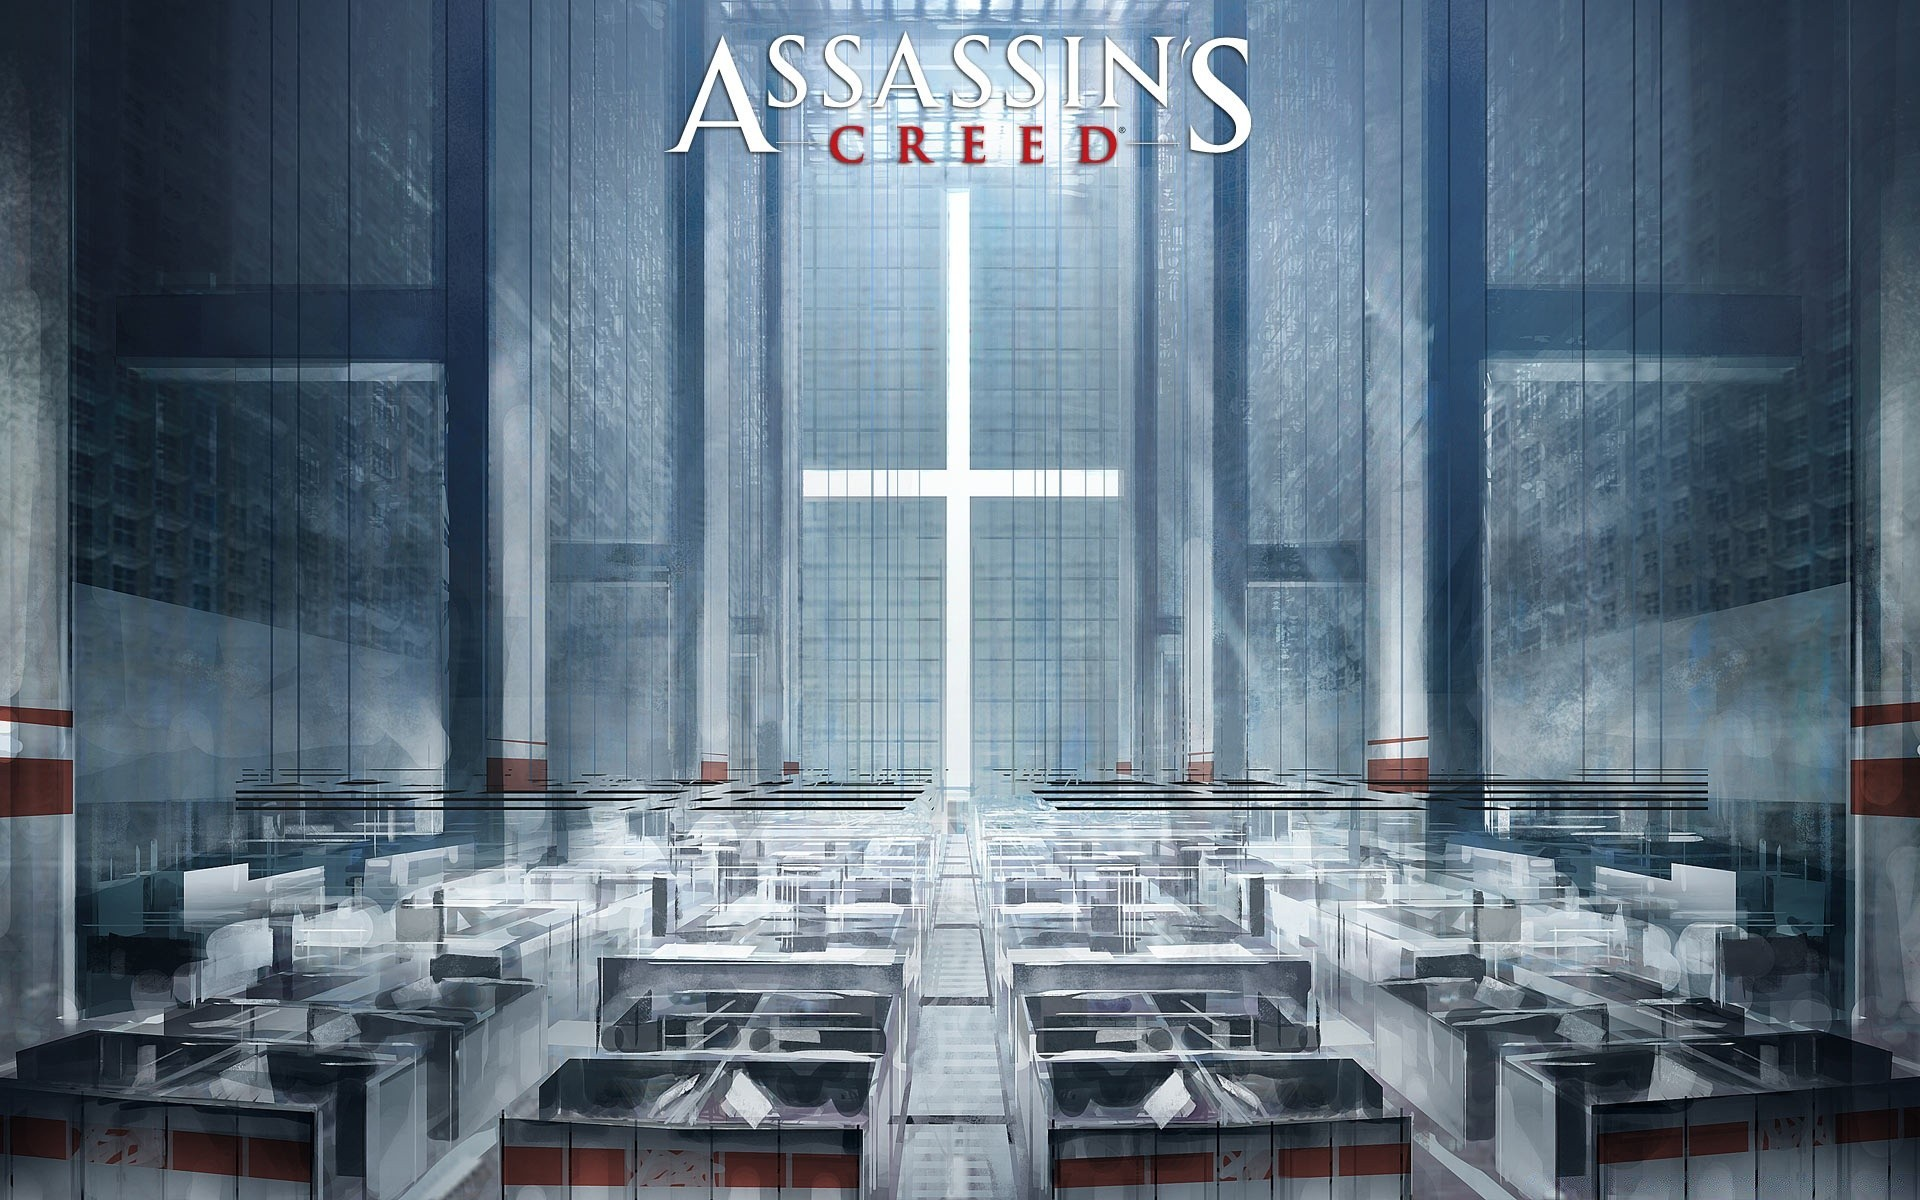 Assassin 's Creed Братство